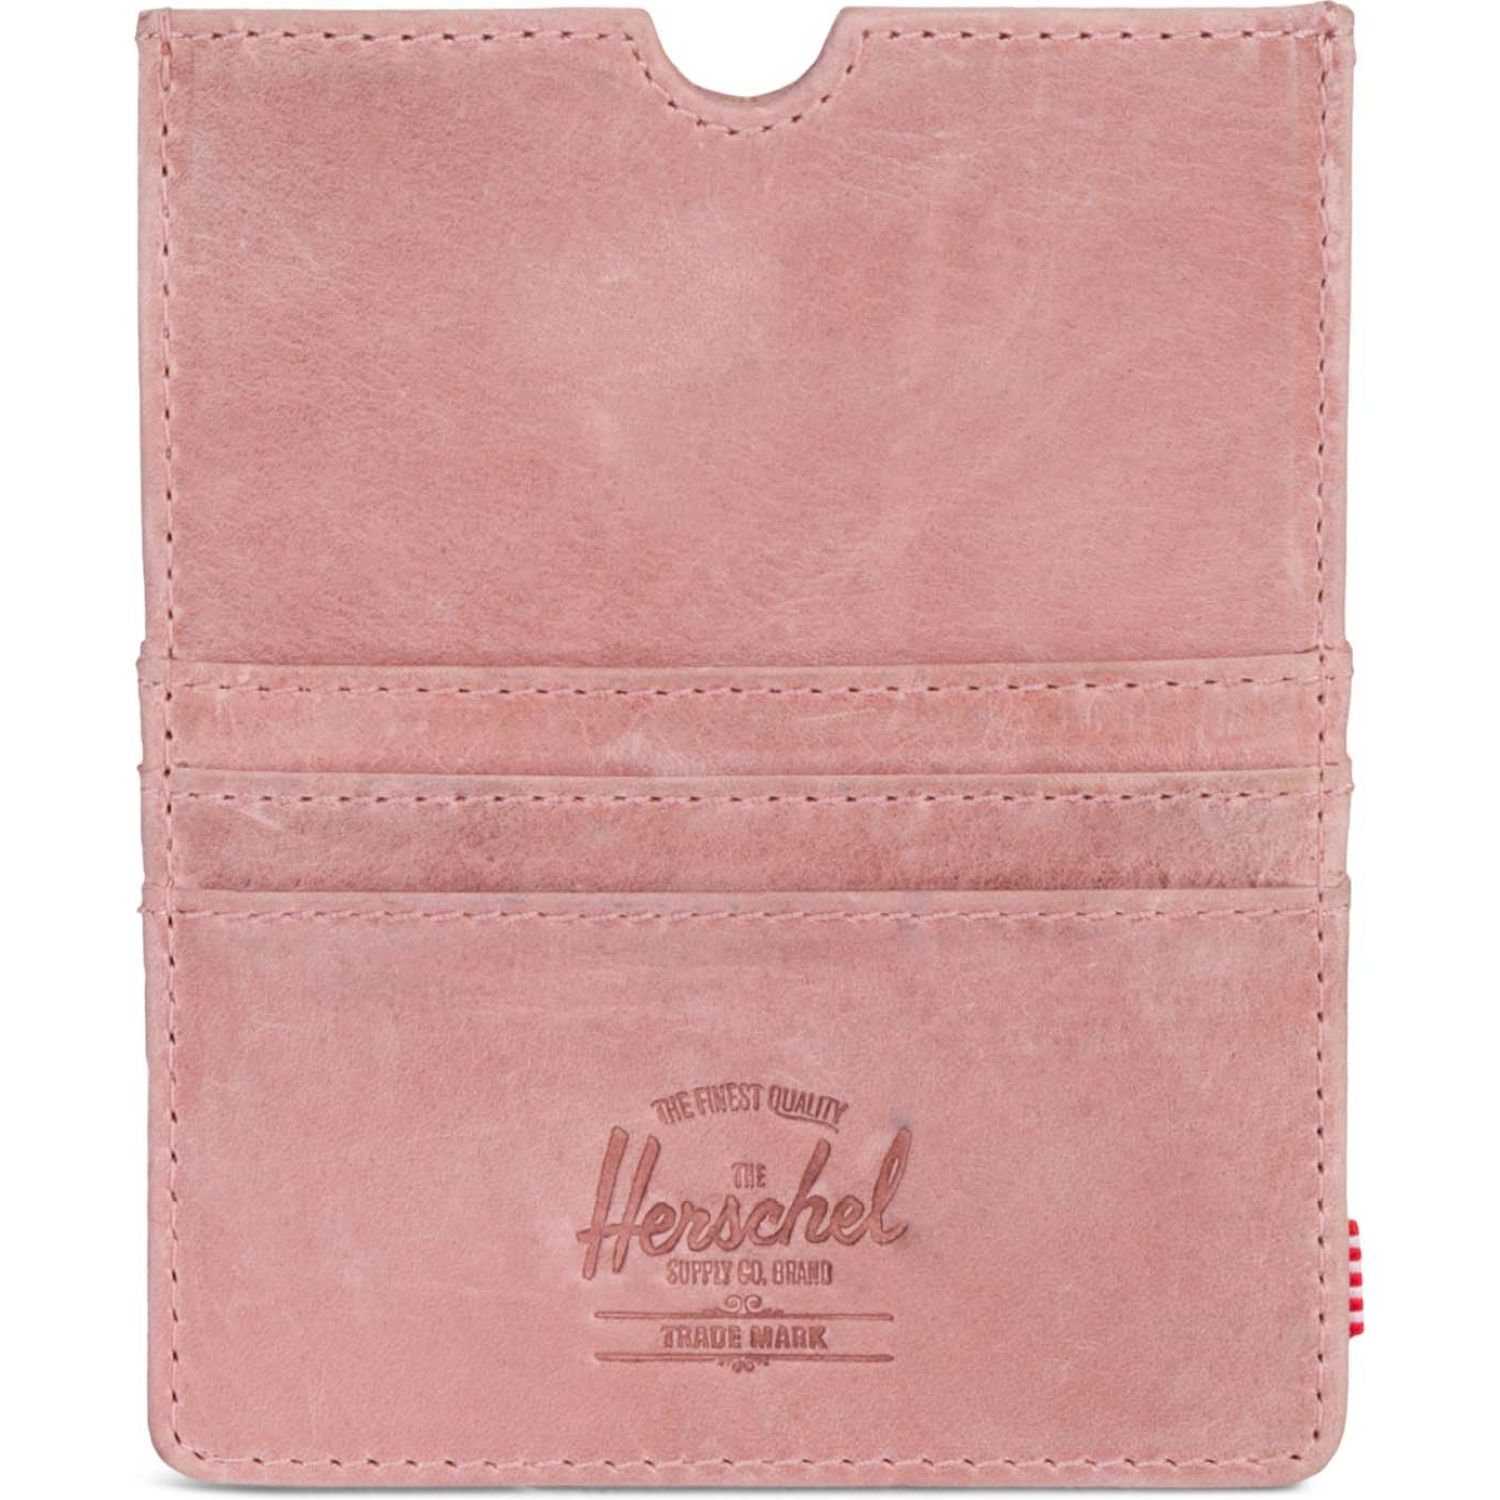 HERSCHEL Eugene Leather Rfid Rosado Porta DocuHombretos